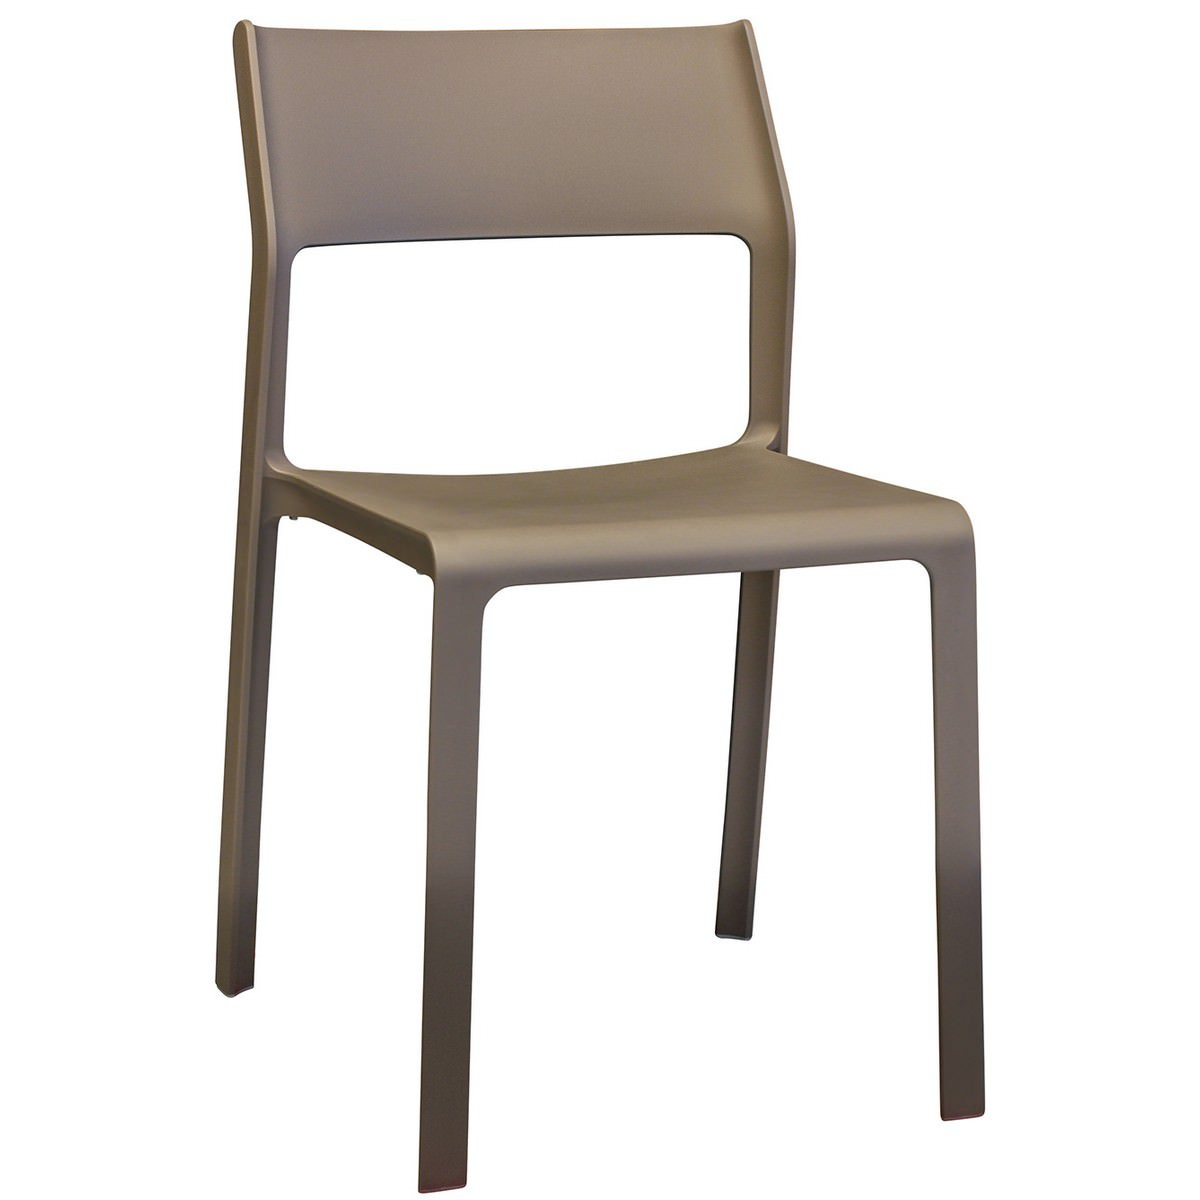 Trill Italian Made Commercial Grade Indoor / Outdoor Dining Chair, Taupe